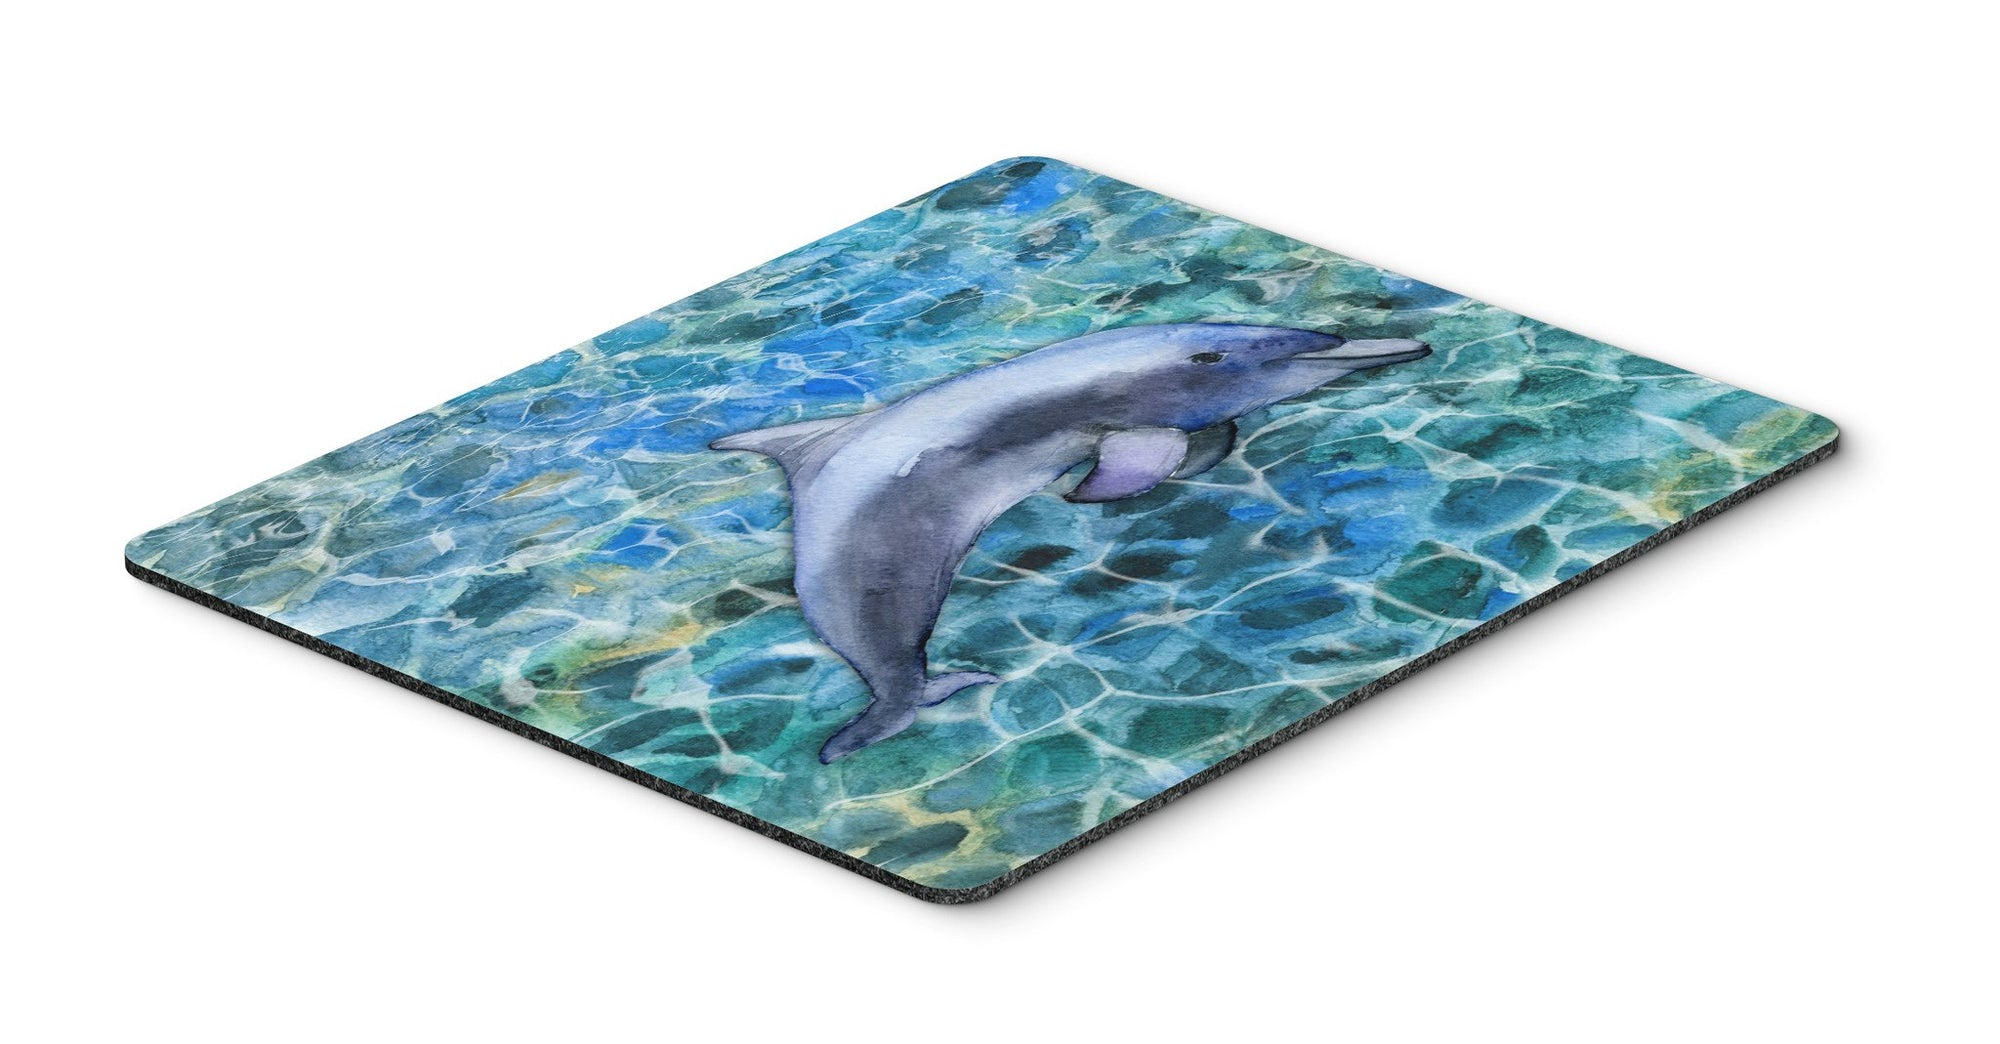 Dolphin Mouse Pad, Hot Pad or Trivet BB5339MP by Caroline's Treasures